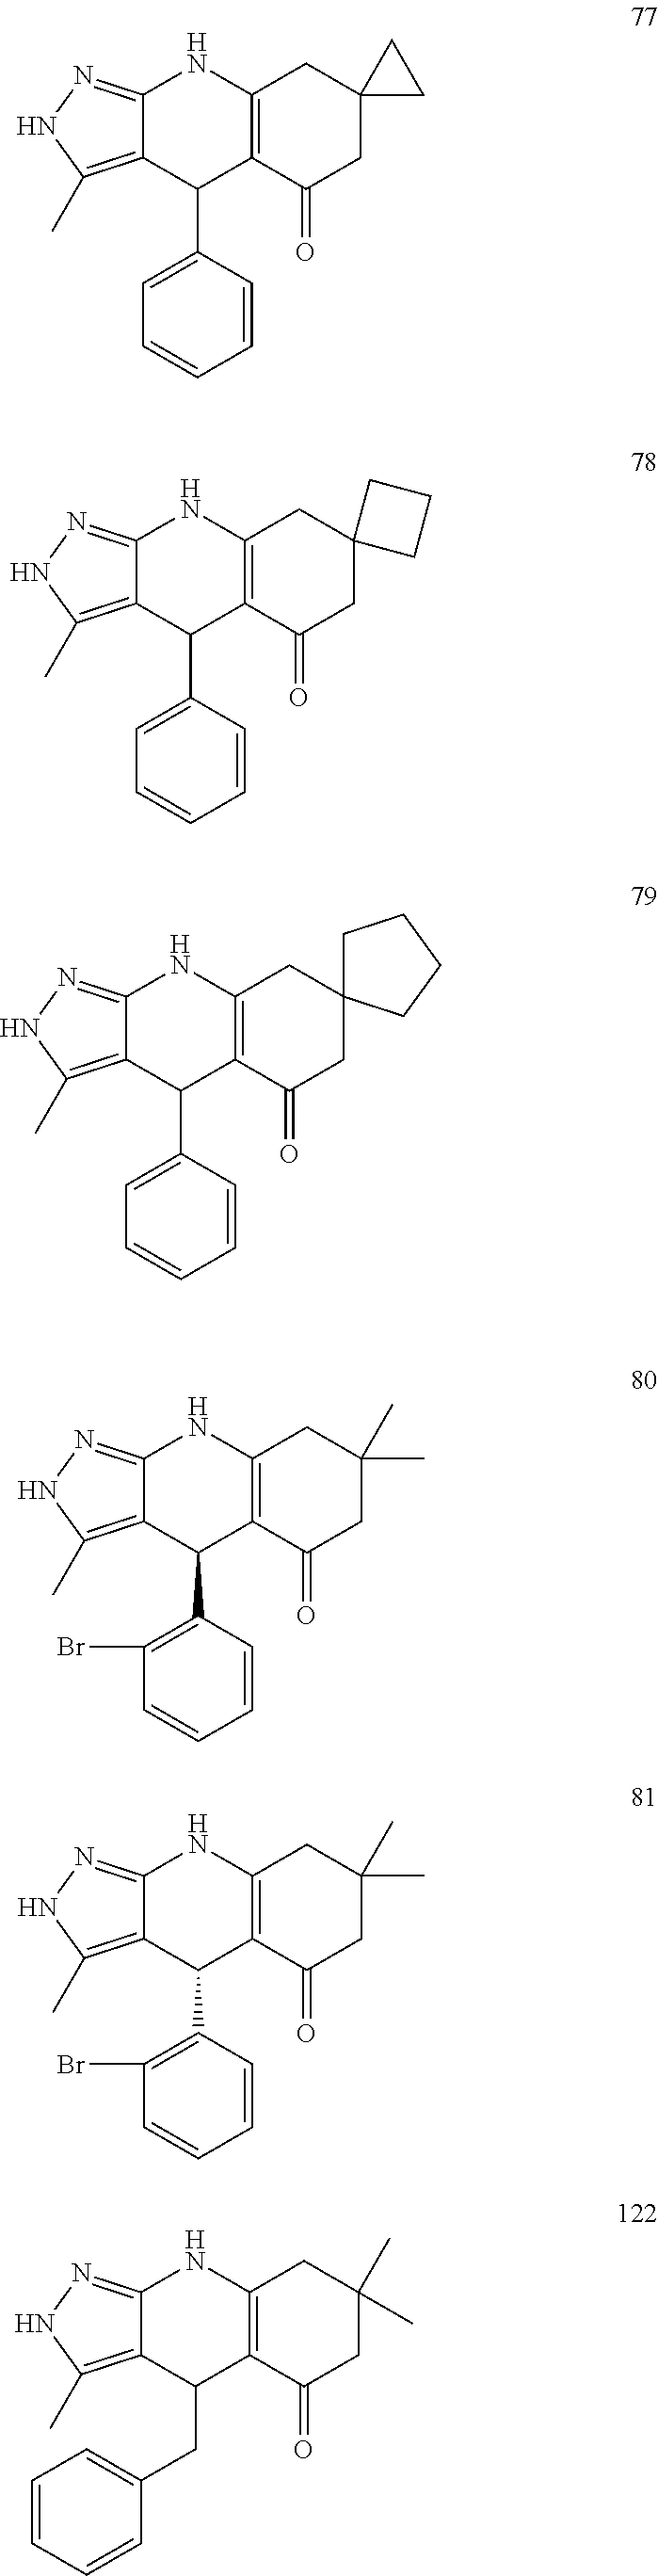 Us9096594b2 Kinase Inhibitors And Methods Of Use Thereof Google Rsk2 Switch Wiring Diagram Figure Us09096594 20150804 C00043